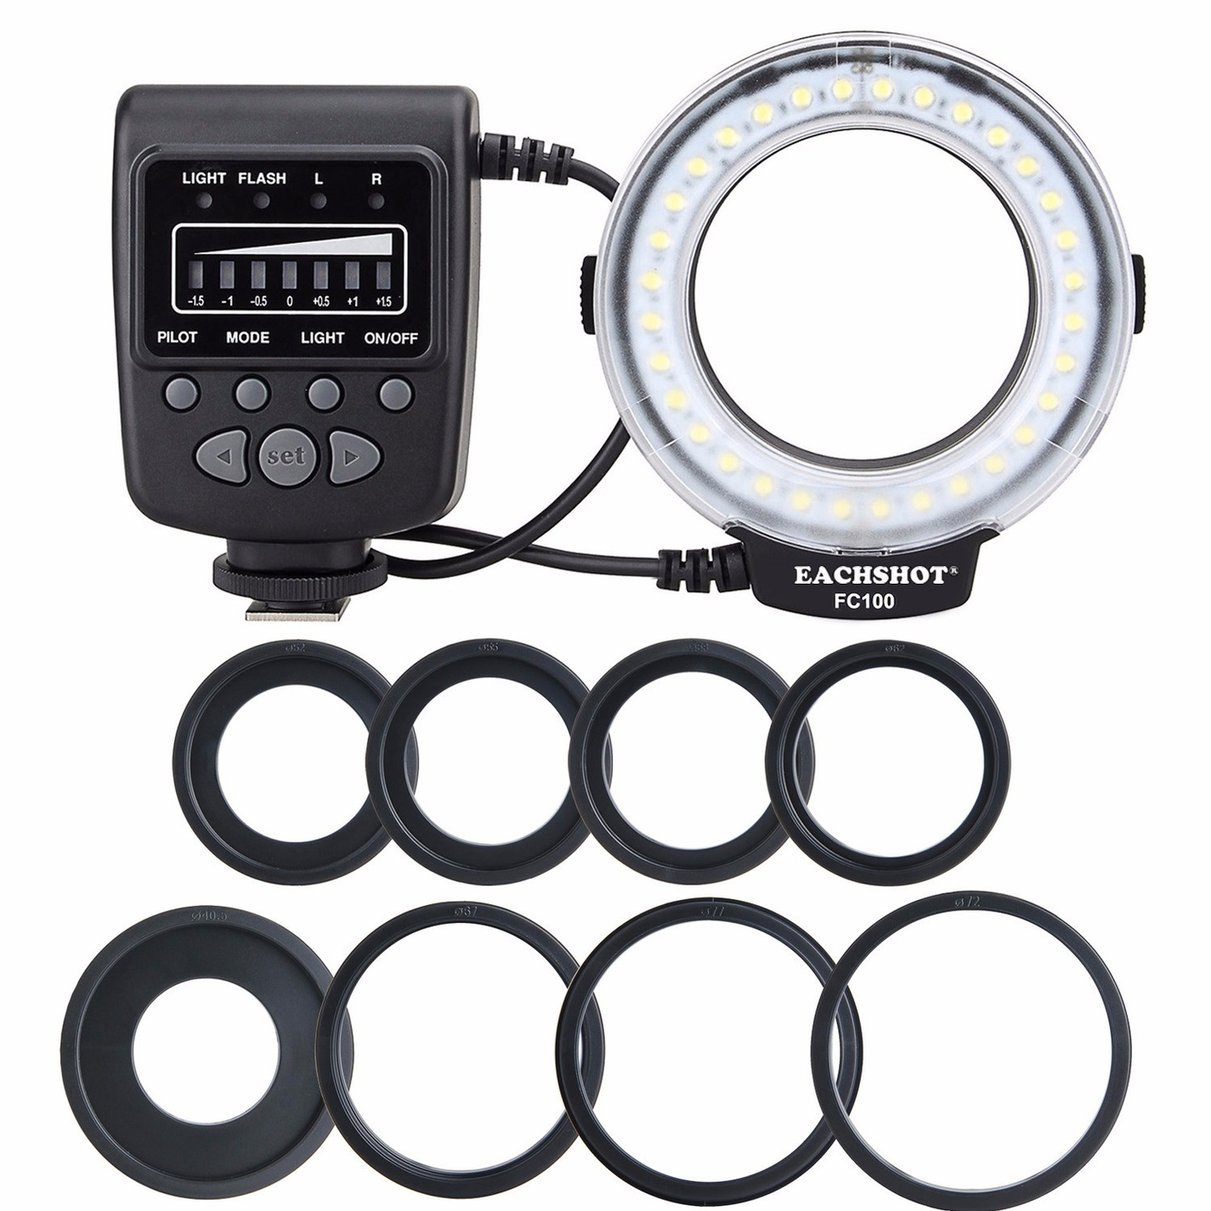 Free ship Meike FC-100 FC100 Macro Ring Flash/Light MK FC 100 for Canon for EOS 650D 600D 60D 7D 550D 1100D T5i T4i T3i T3 58mm wide angle fisheye camera lens 0 35x with a macro lens for canon eos 700d 650d 600d 550d 1100d rebel t5i t4i t3i t3 t2i